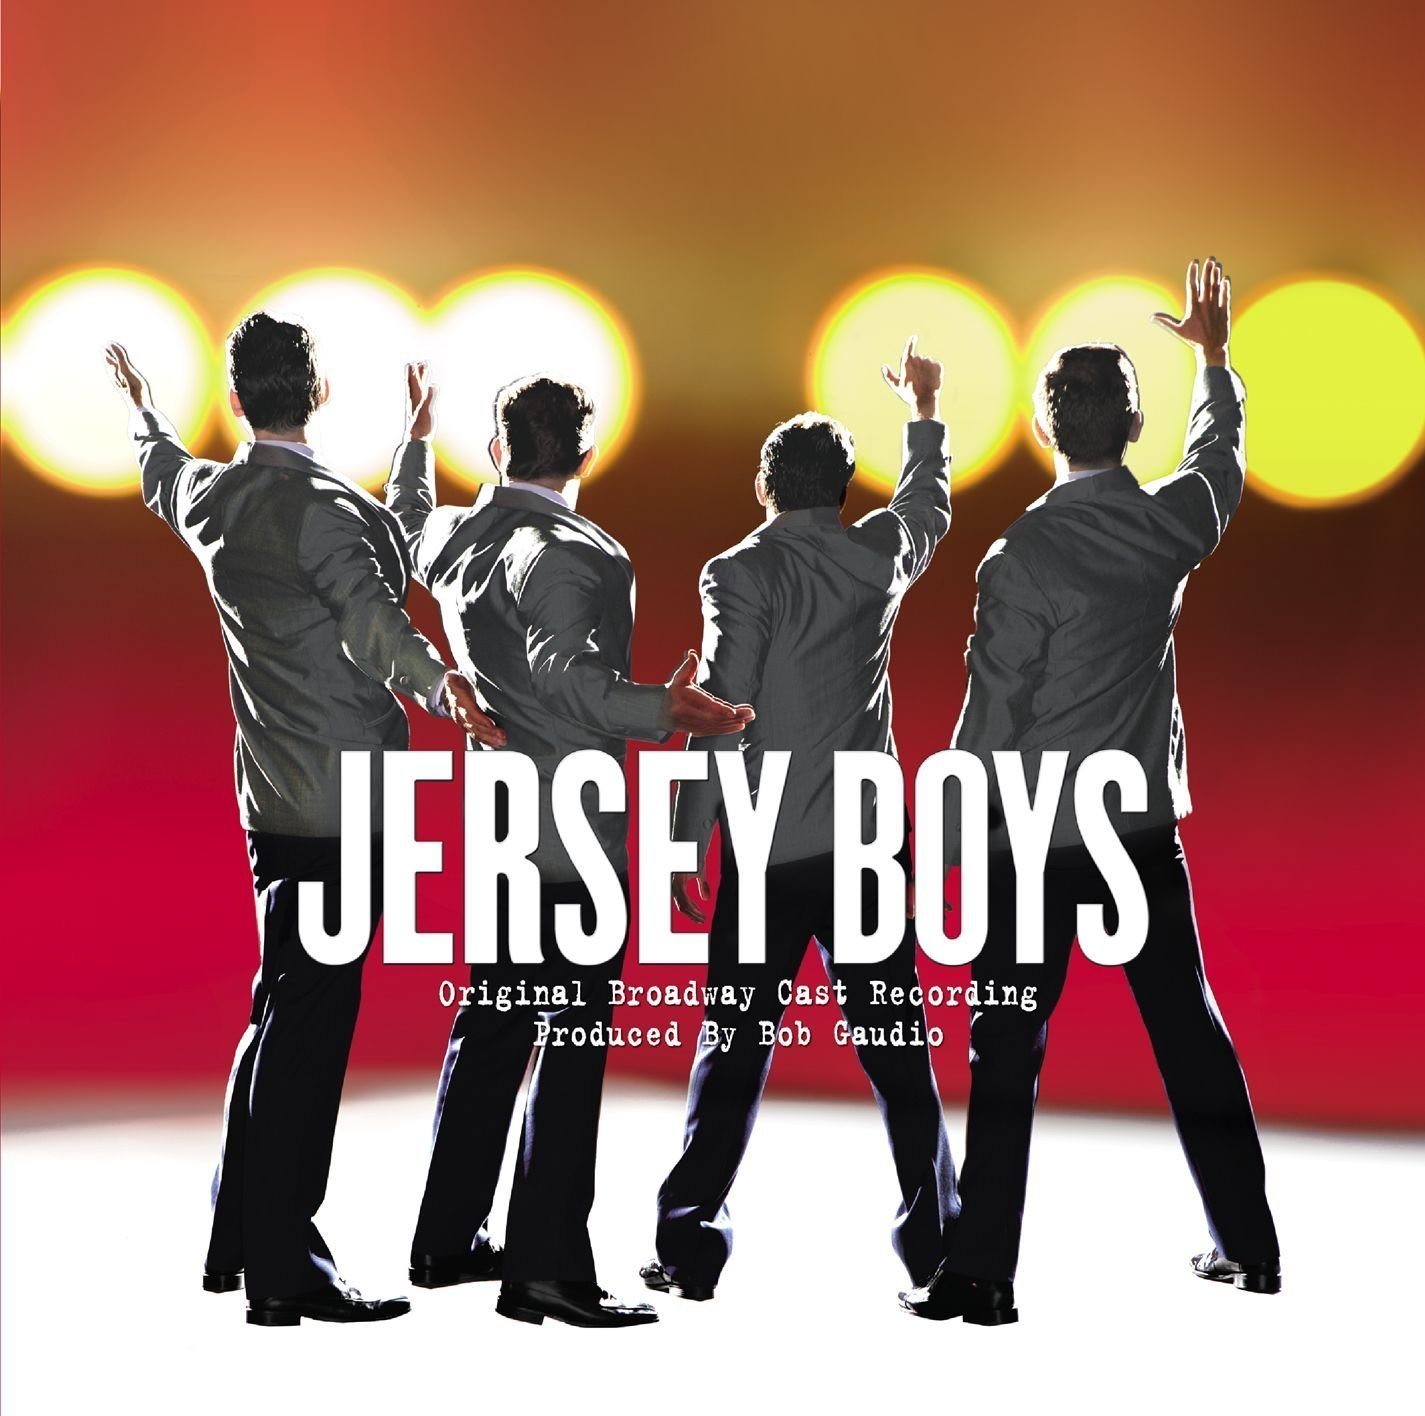 JERSEY BOYS Comes To Ntk Hall Next Month